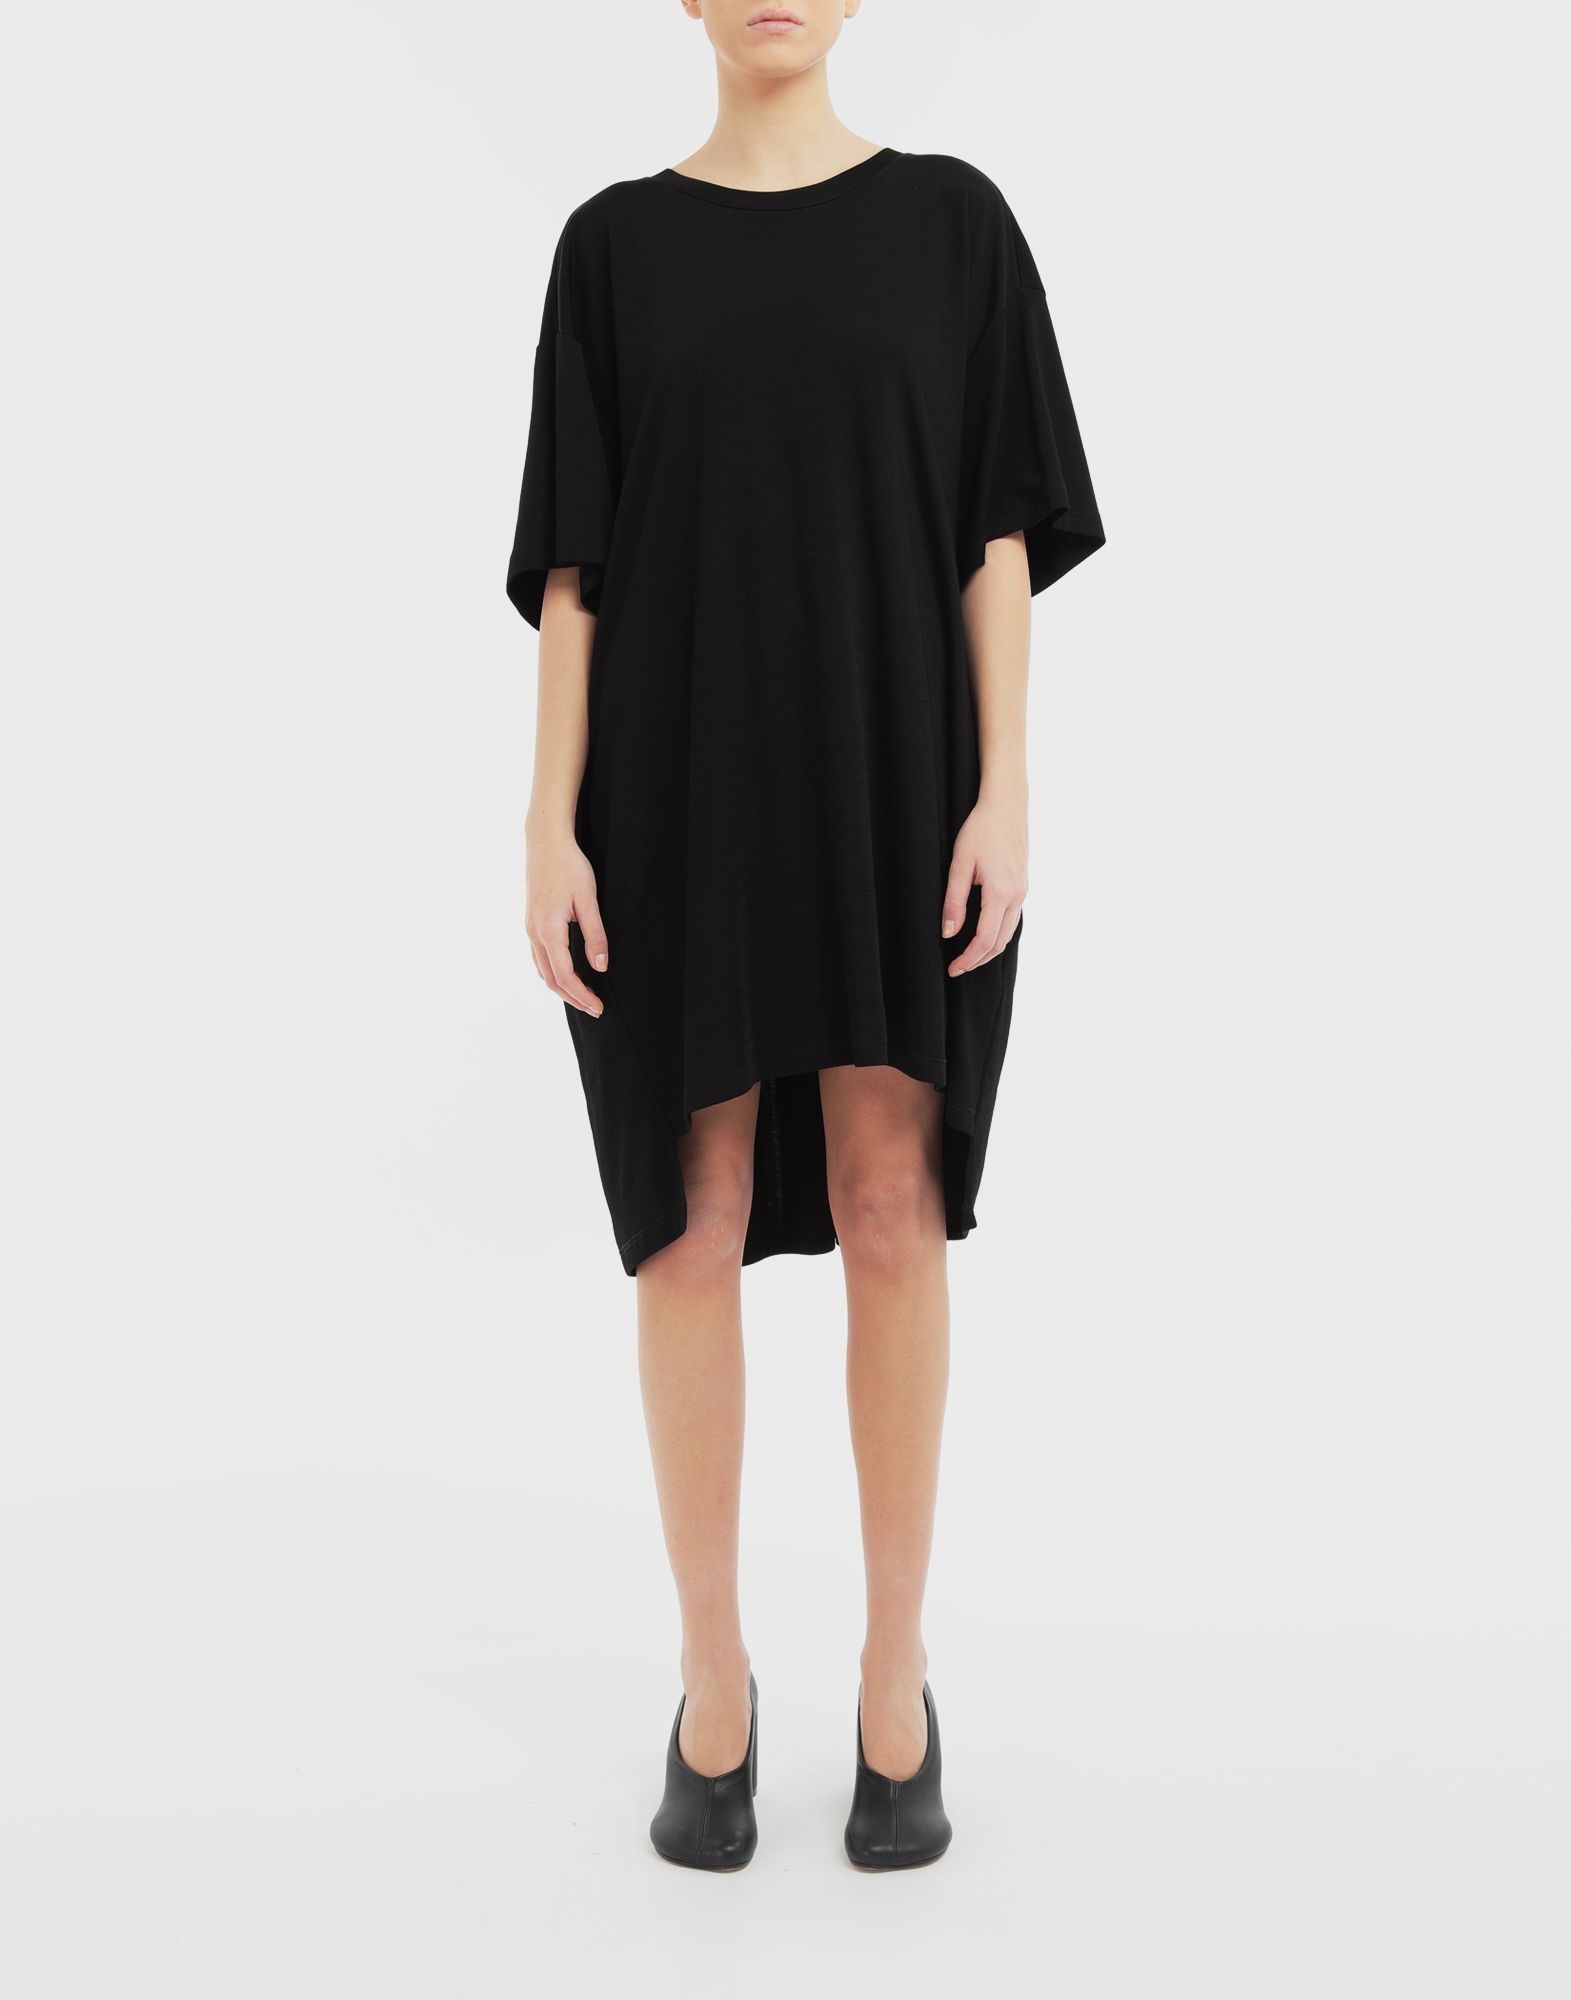 MM6 MAISON MARGIELA Dropped back T-shirt dress Short dress Woman r